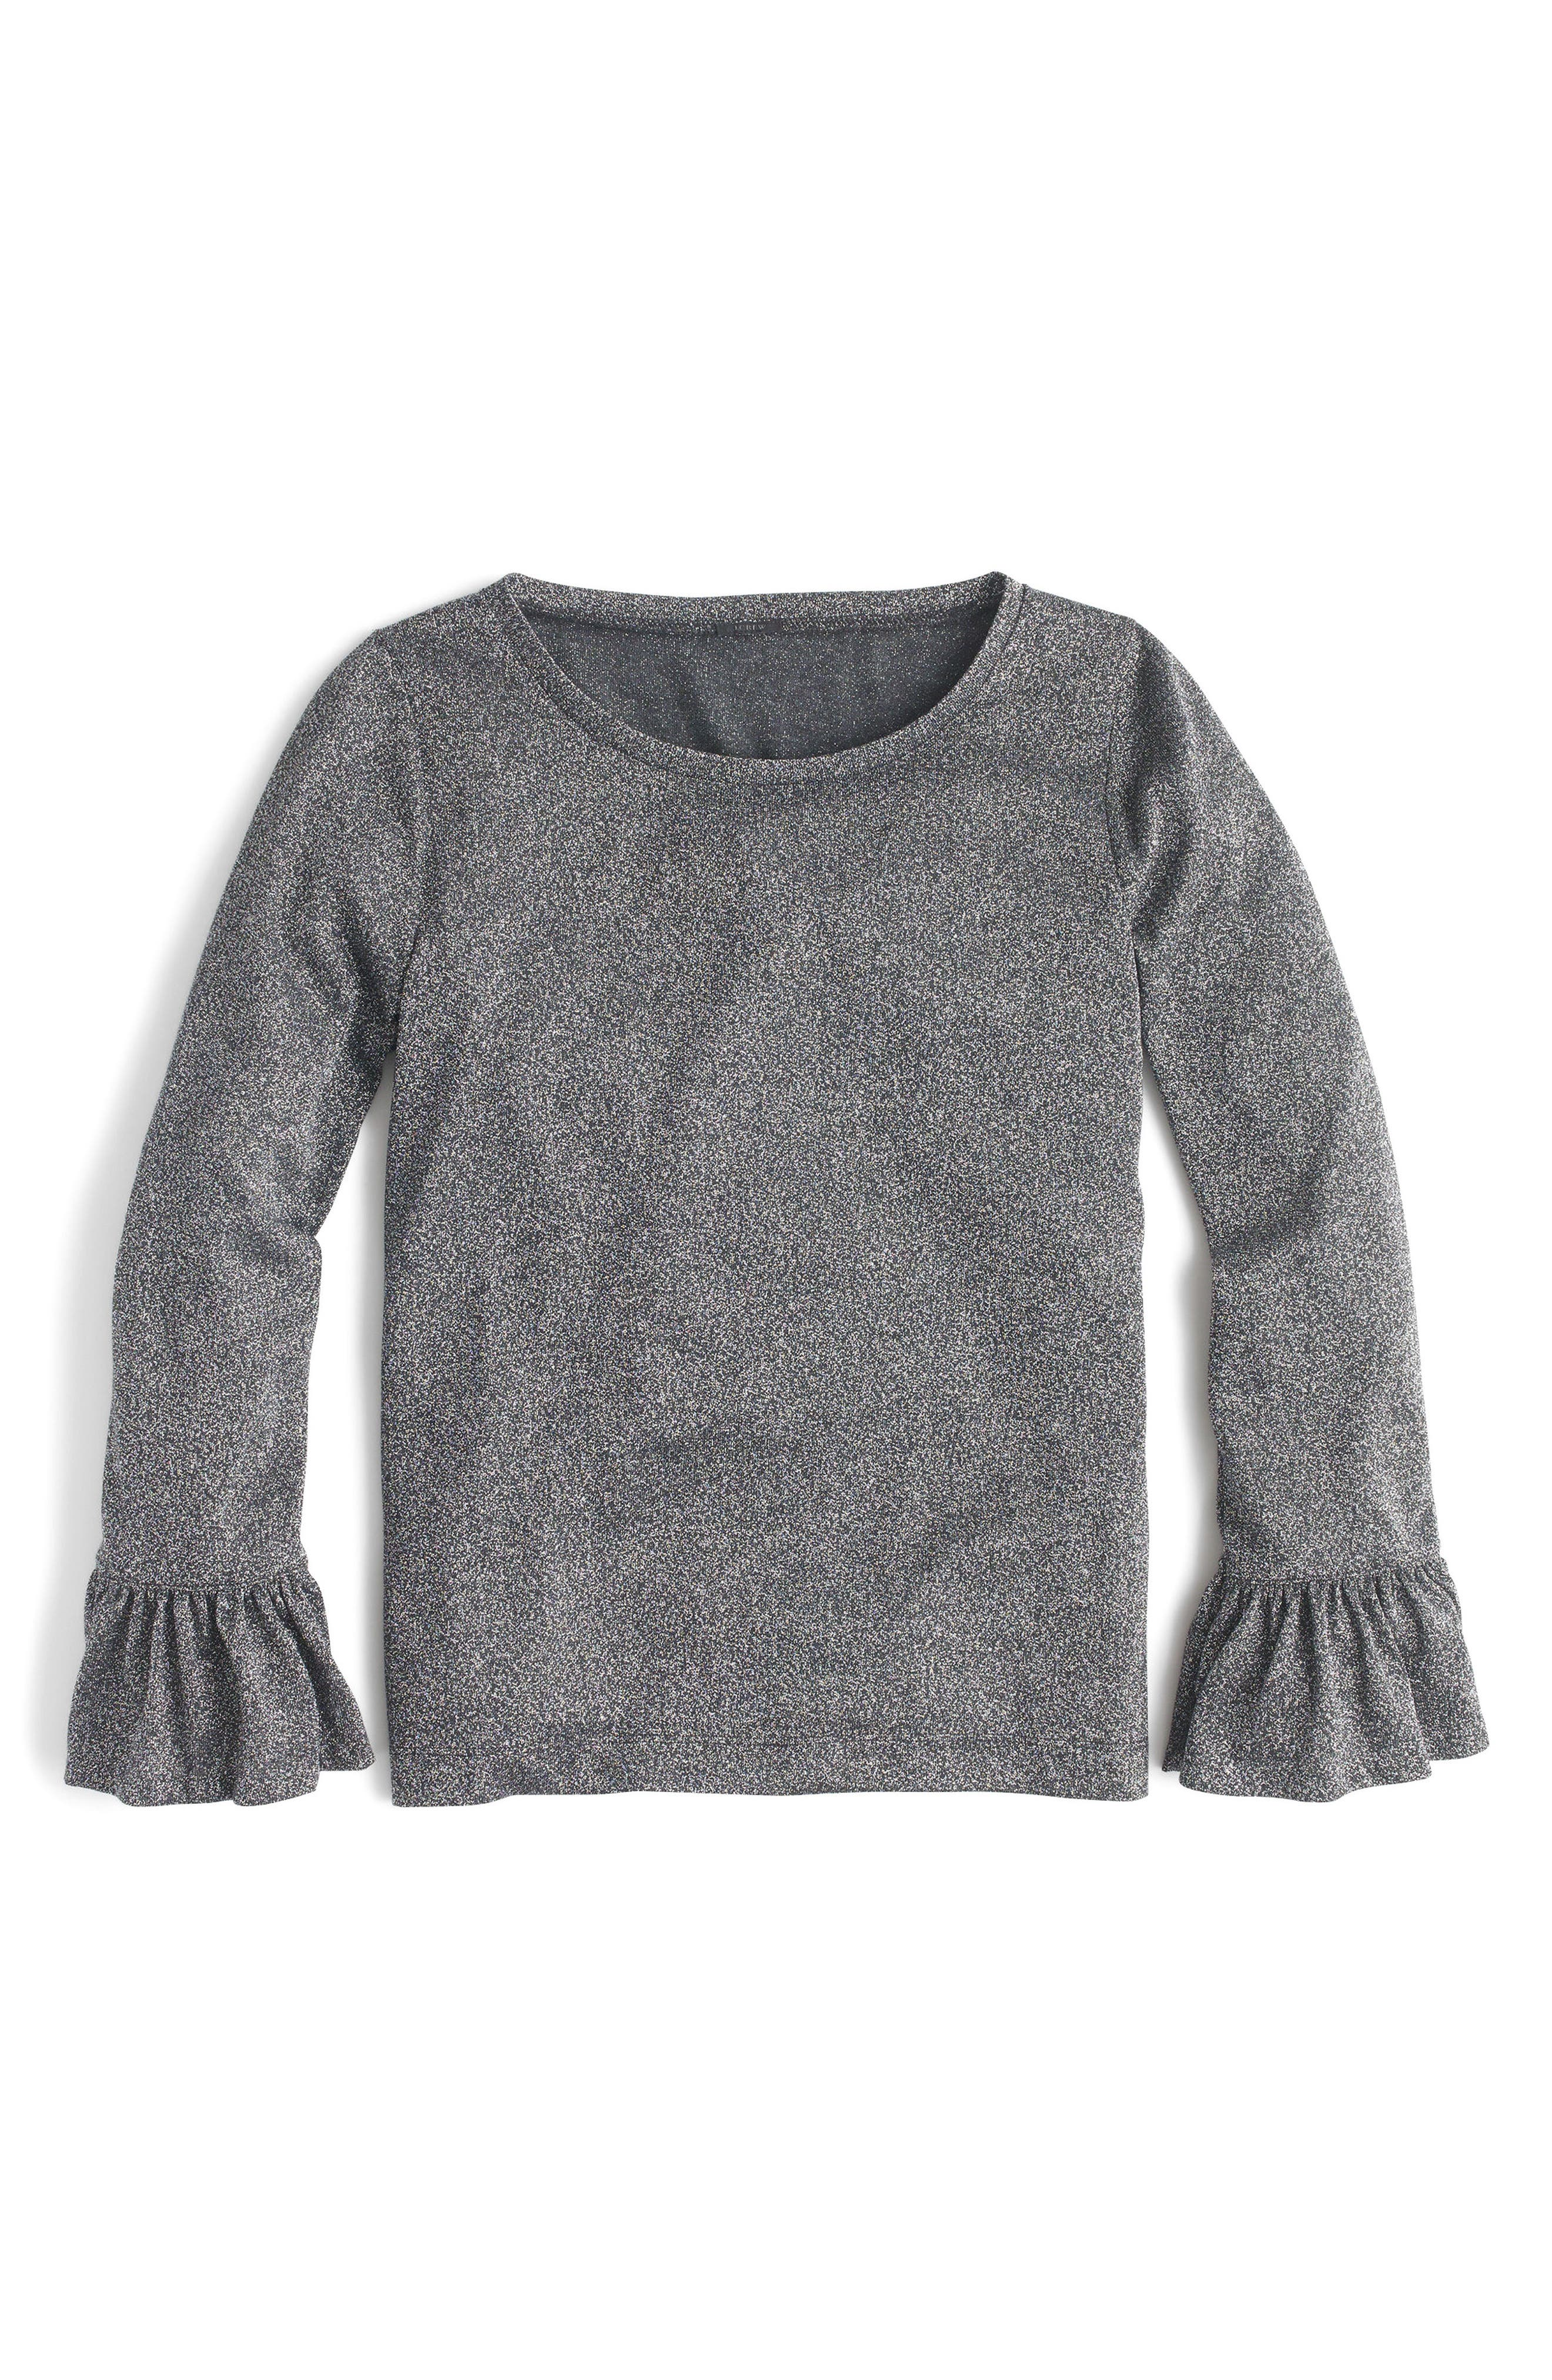 J.Crew Bell Sleeve Sparkle Top,                             Alternate thumbnail 4, color,                             Heather Charcoal